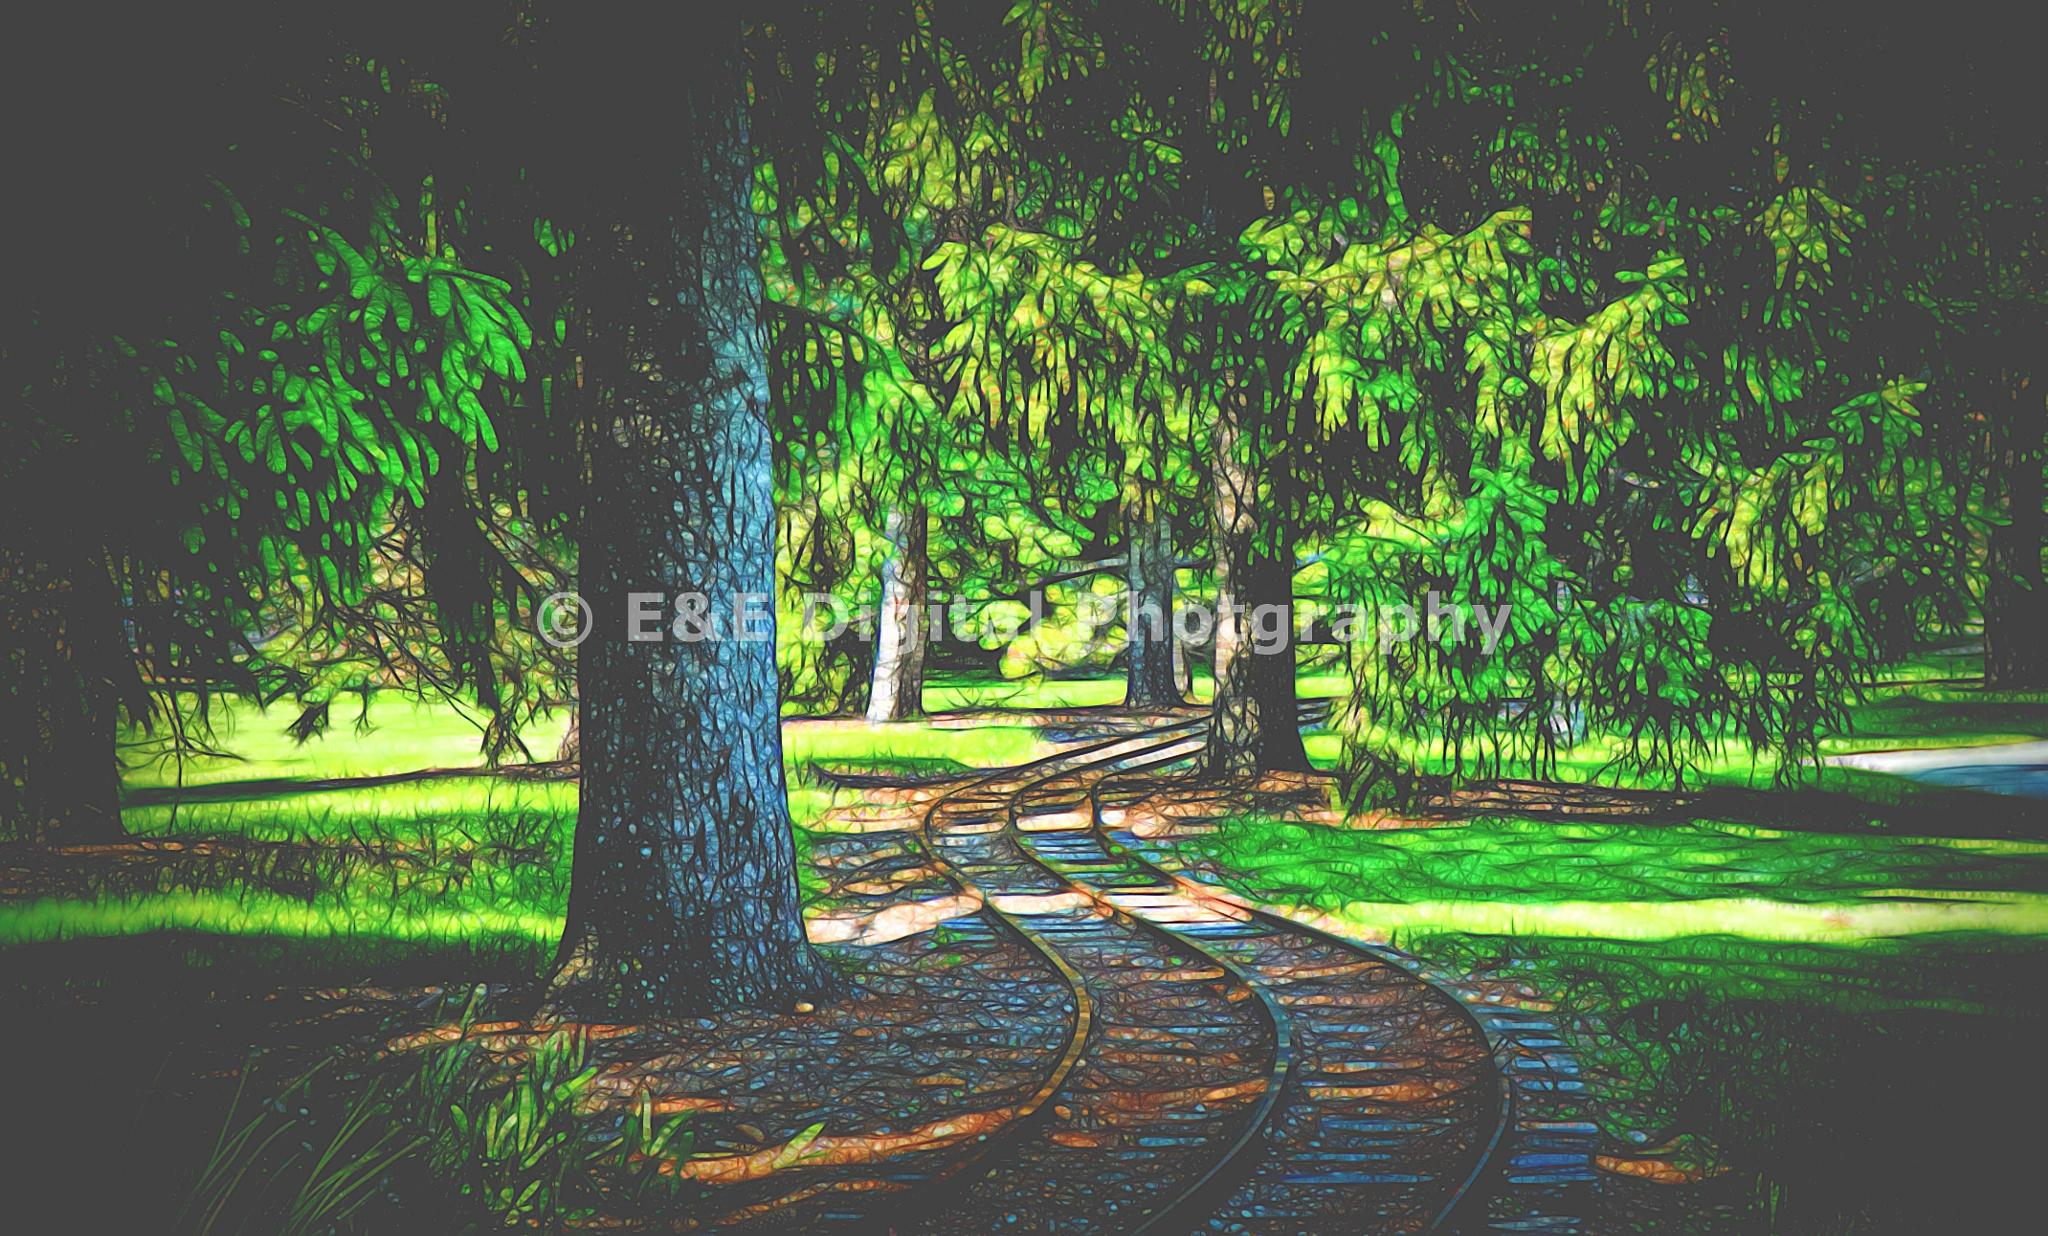 art at the park #9 by eric.eggers.10